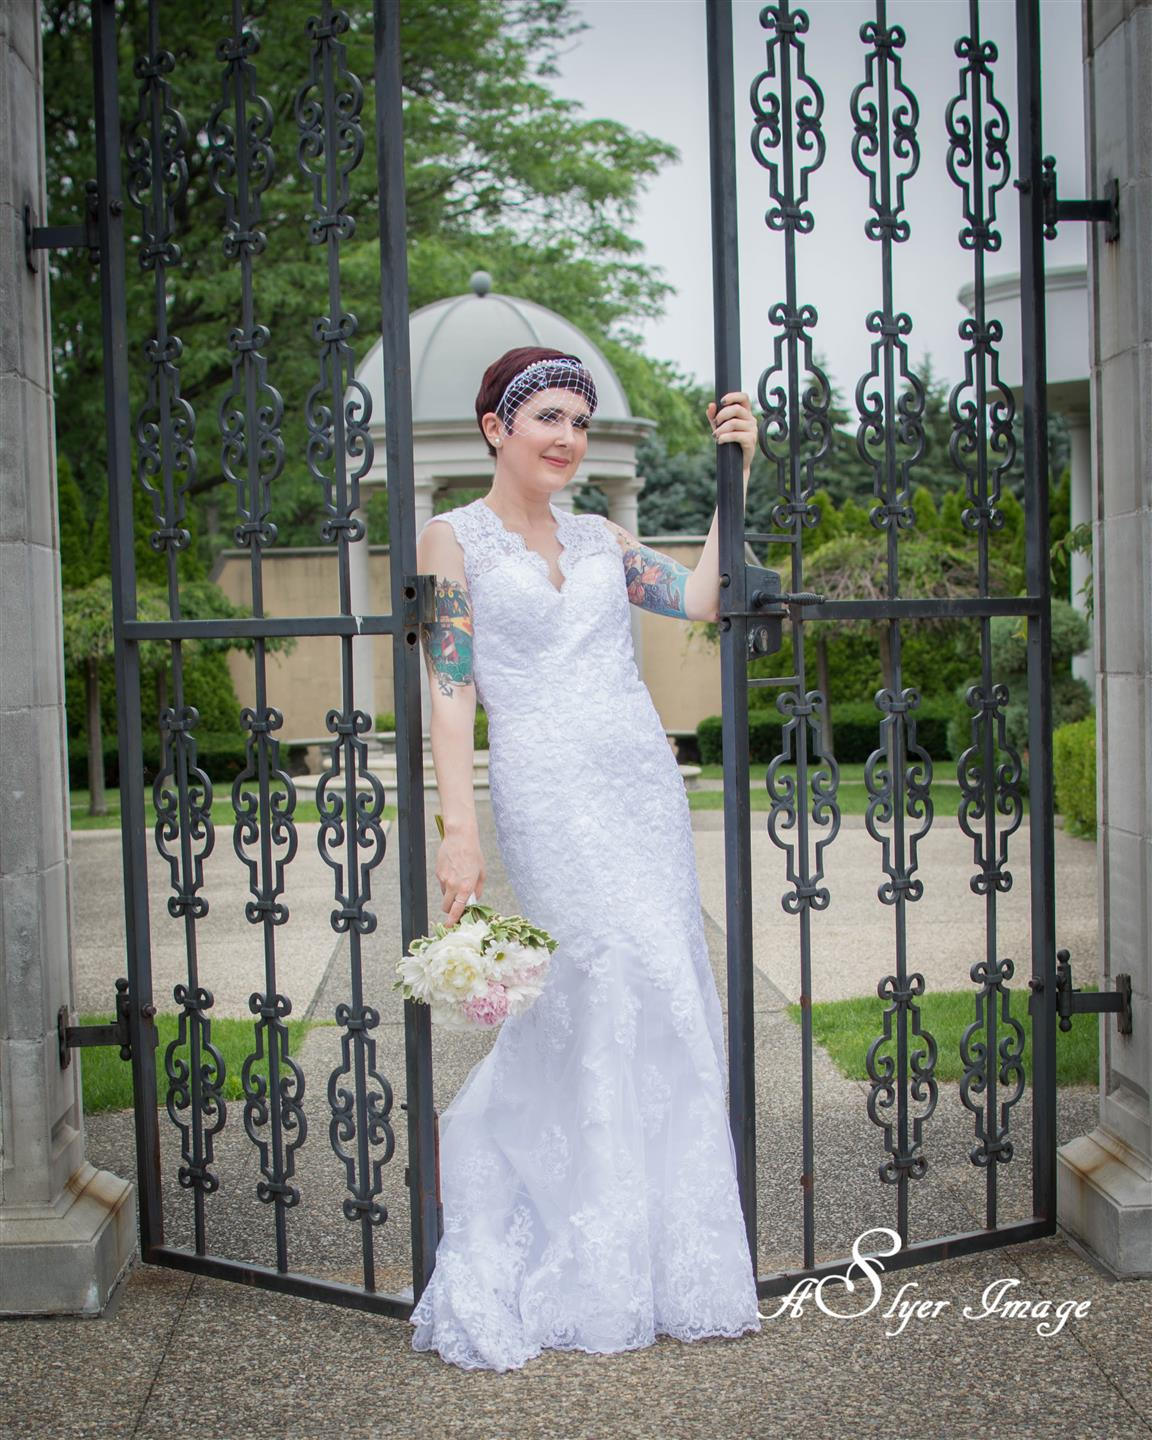 Bride holding bouquet standing in open gateway